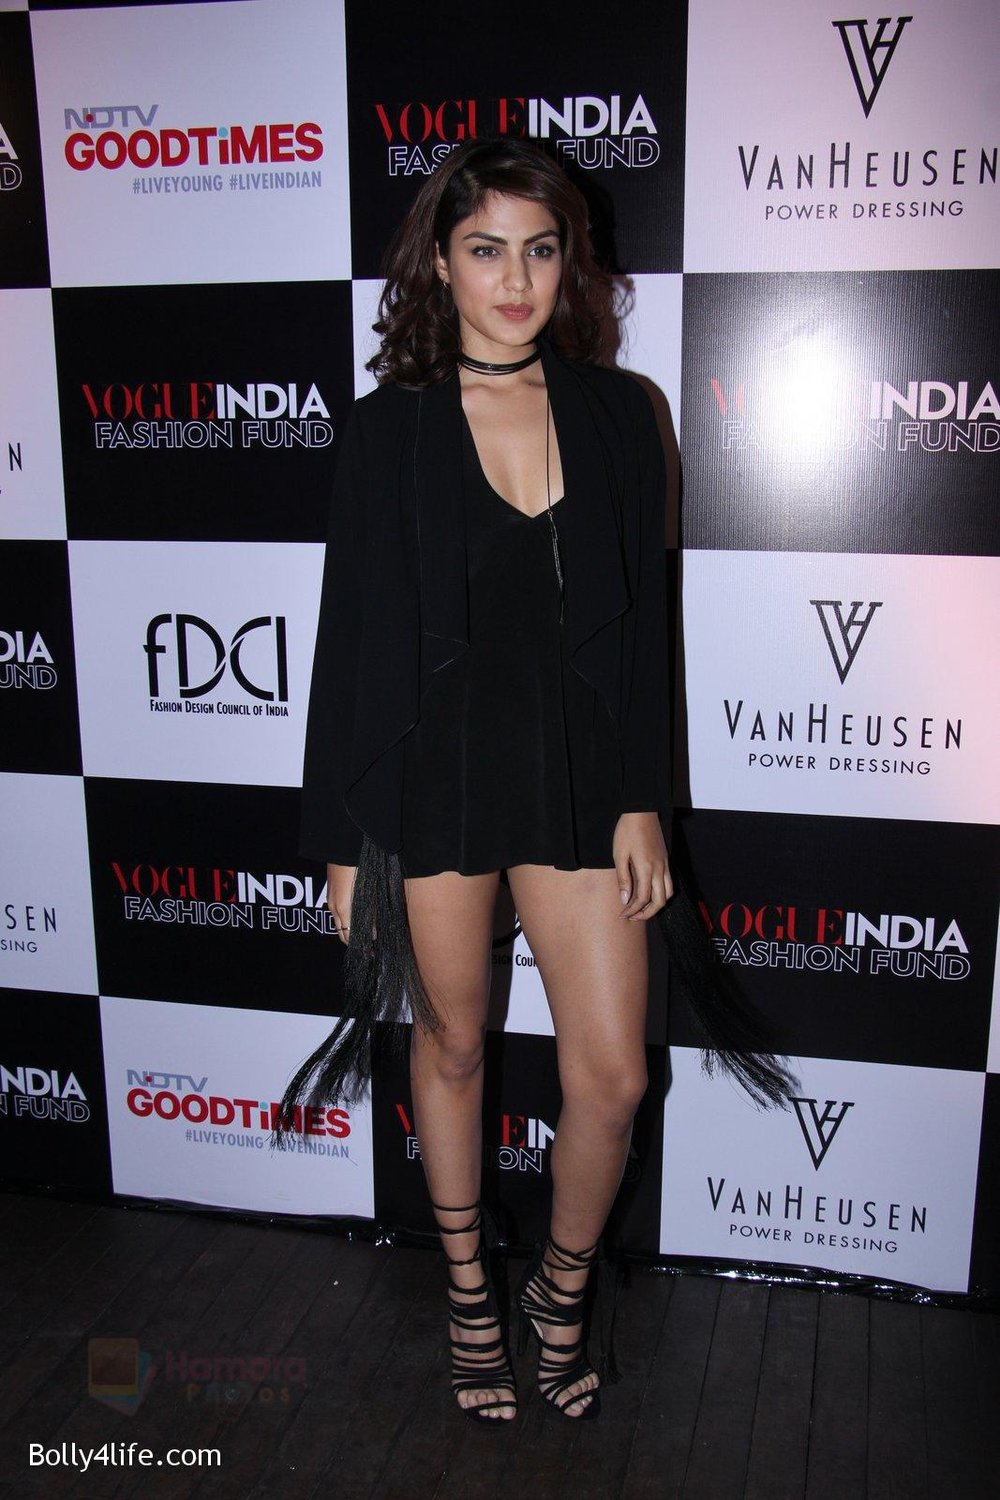 Rhea-Chakraborty-at-Vogue-India-Fashion-Fund-Event-3.jpg